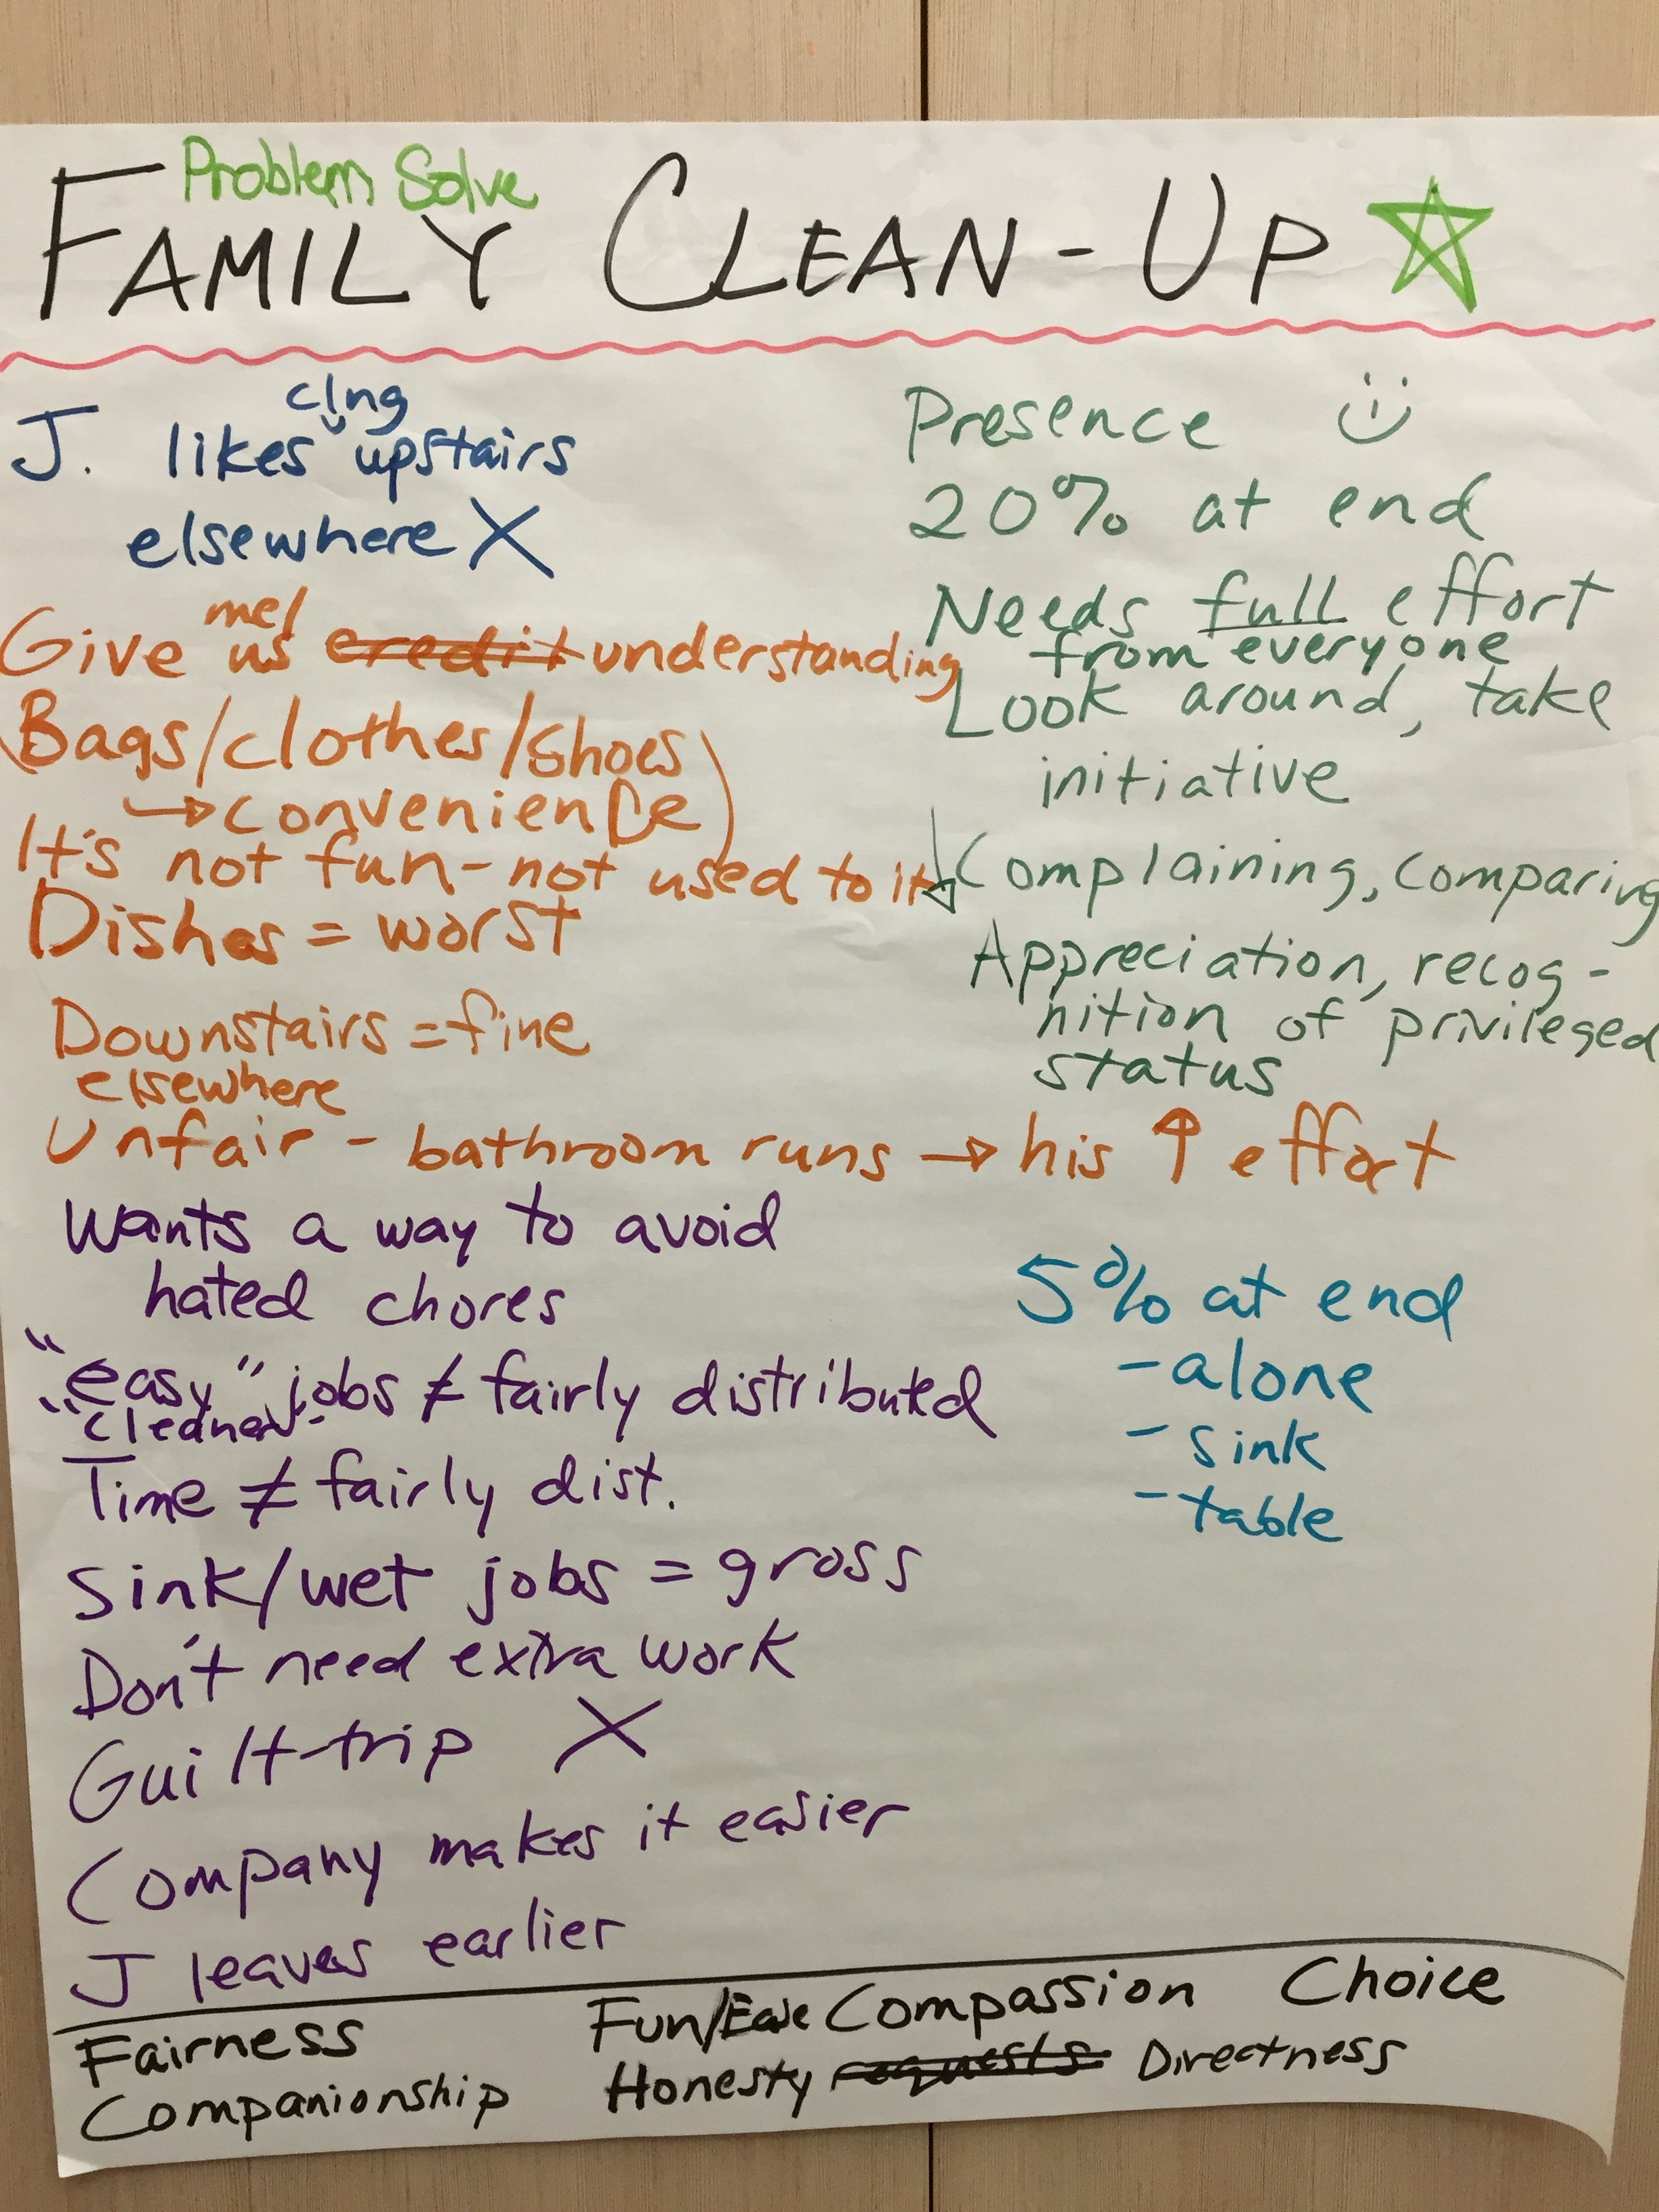 Everyone had a chance to speak their mind and then we listed the needs at the bottom.